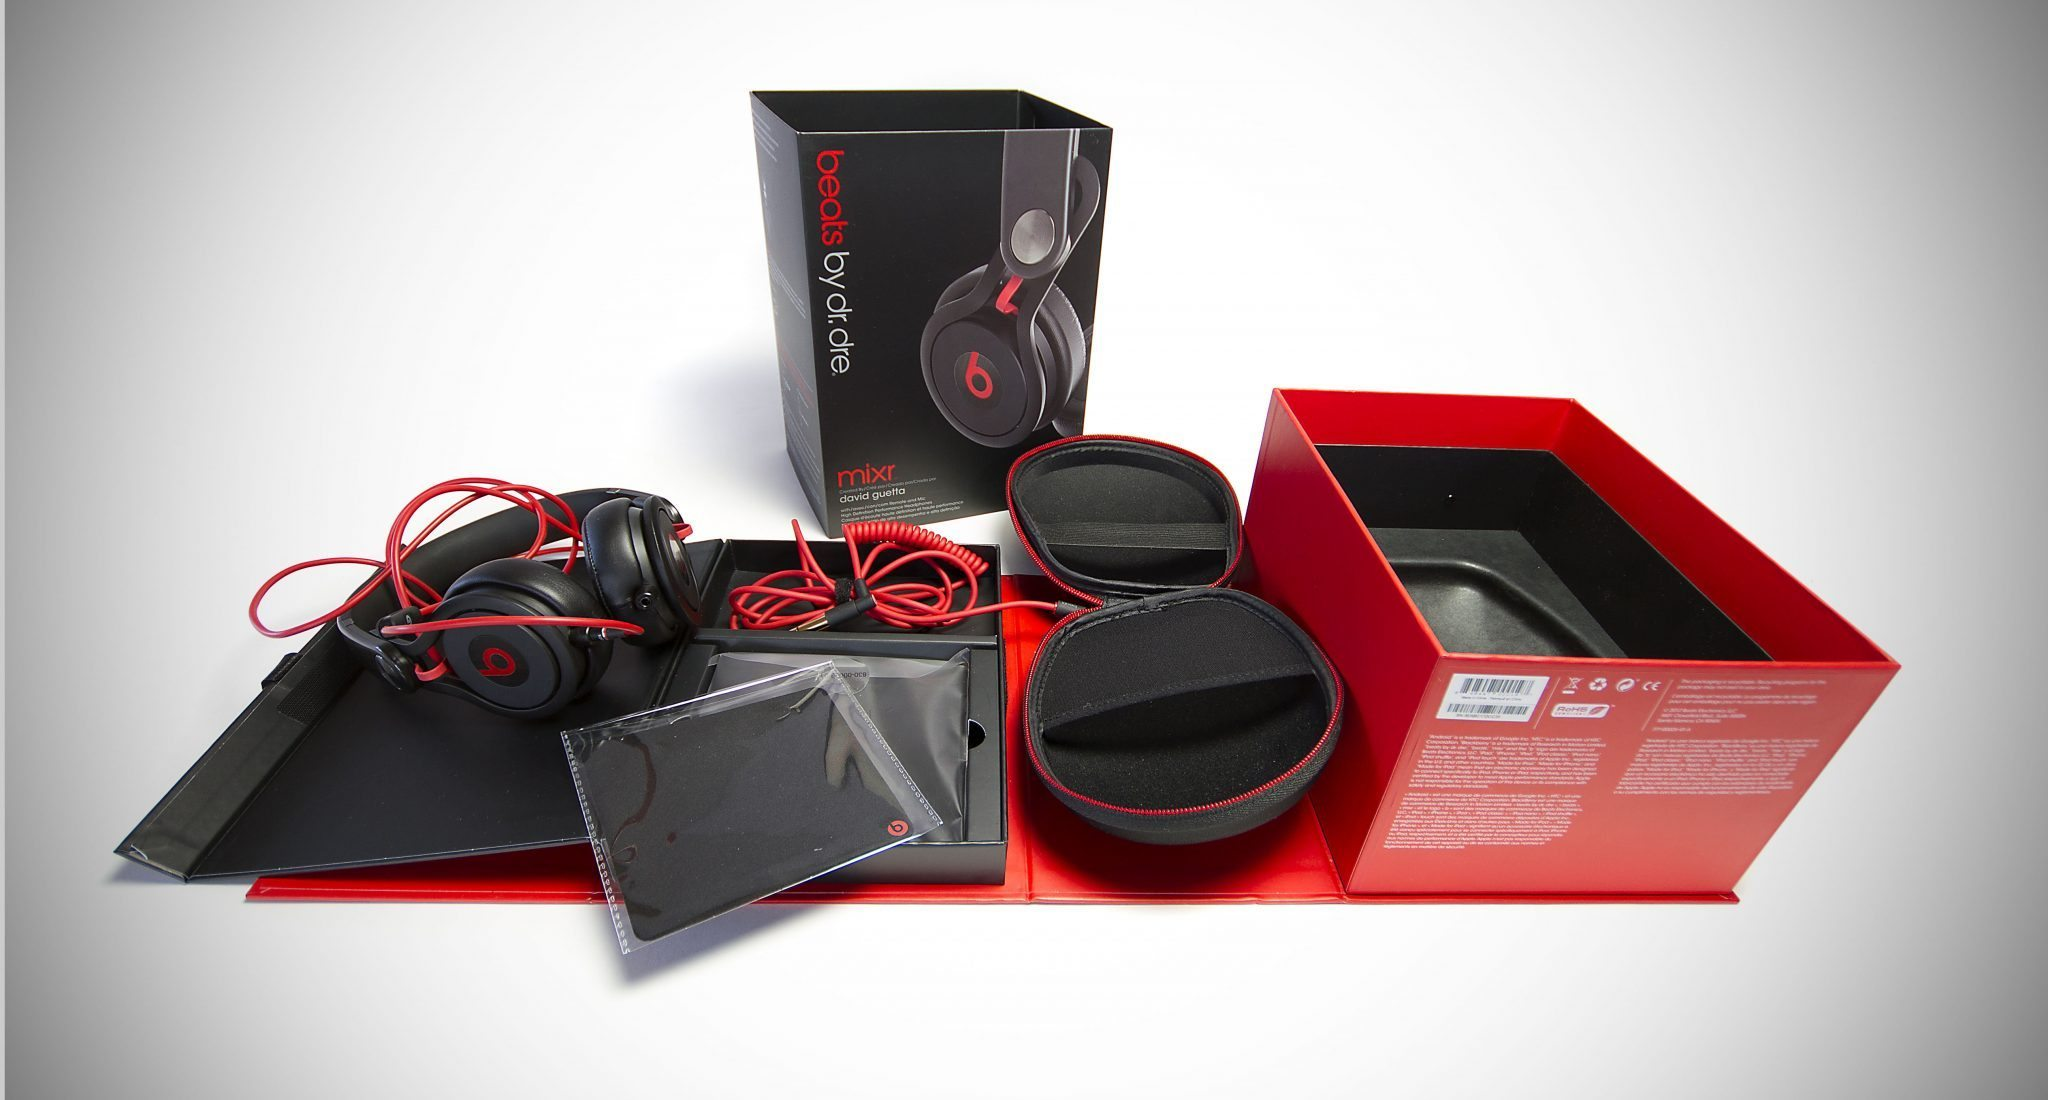 beat by dre mixr_5 review beats by dre mixr dj headphones djworx Beats Headphones Wiring-Diagram at creativeand.co